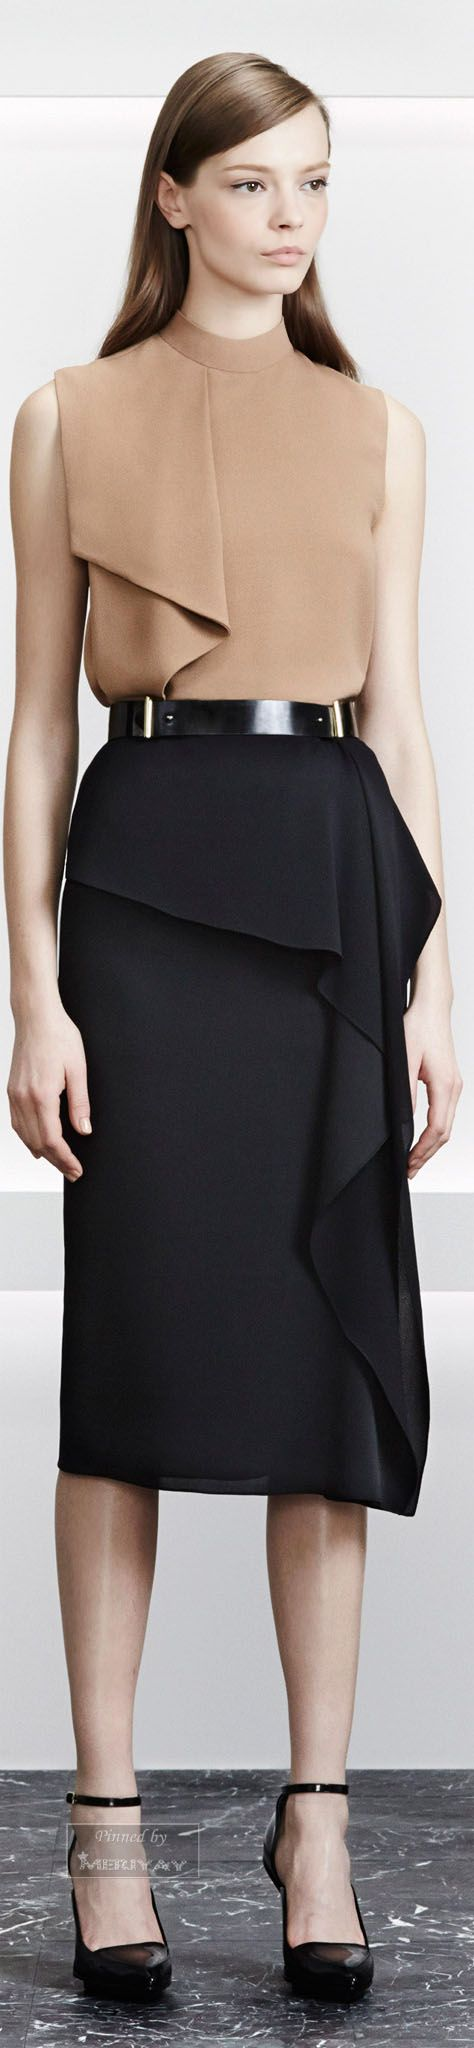 Jason Wu.Pre-Fall 2015. This Patent Black Belt look fabulous! #beigeblouse #blackskirt #blackheel